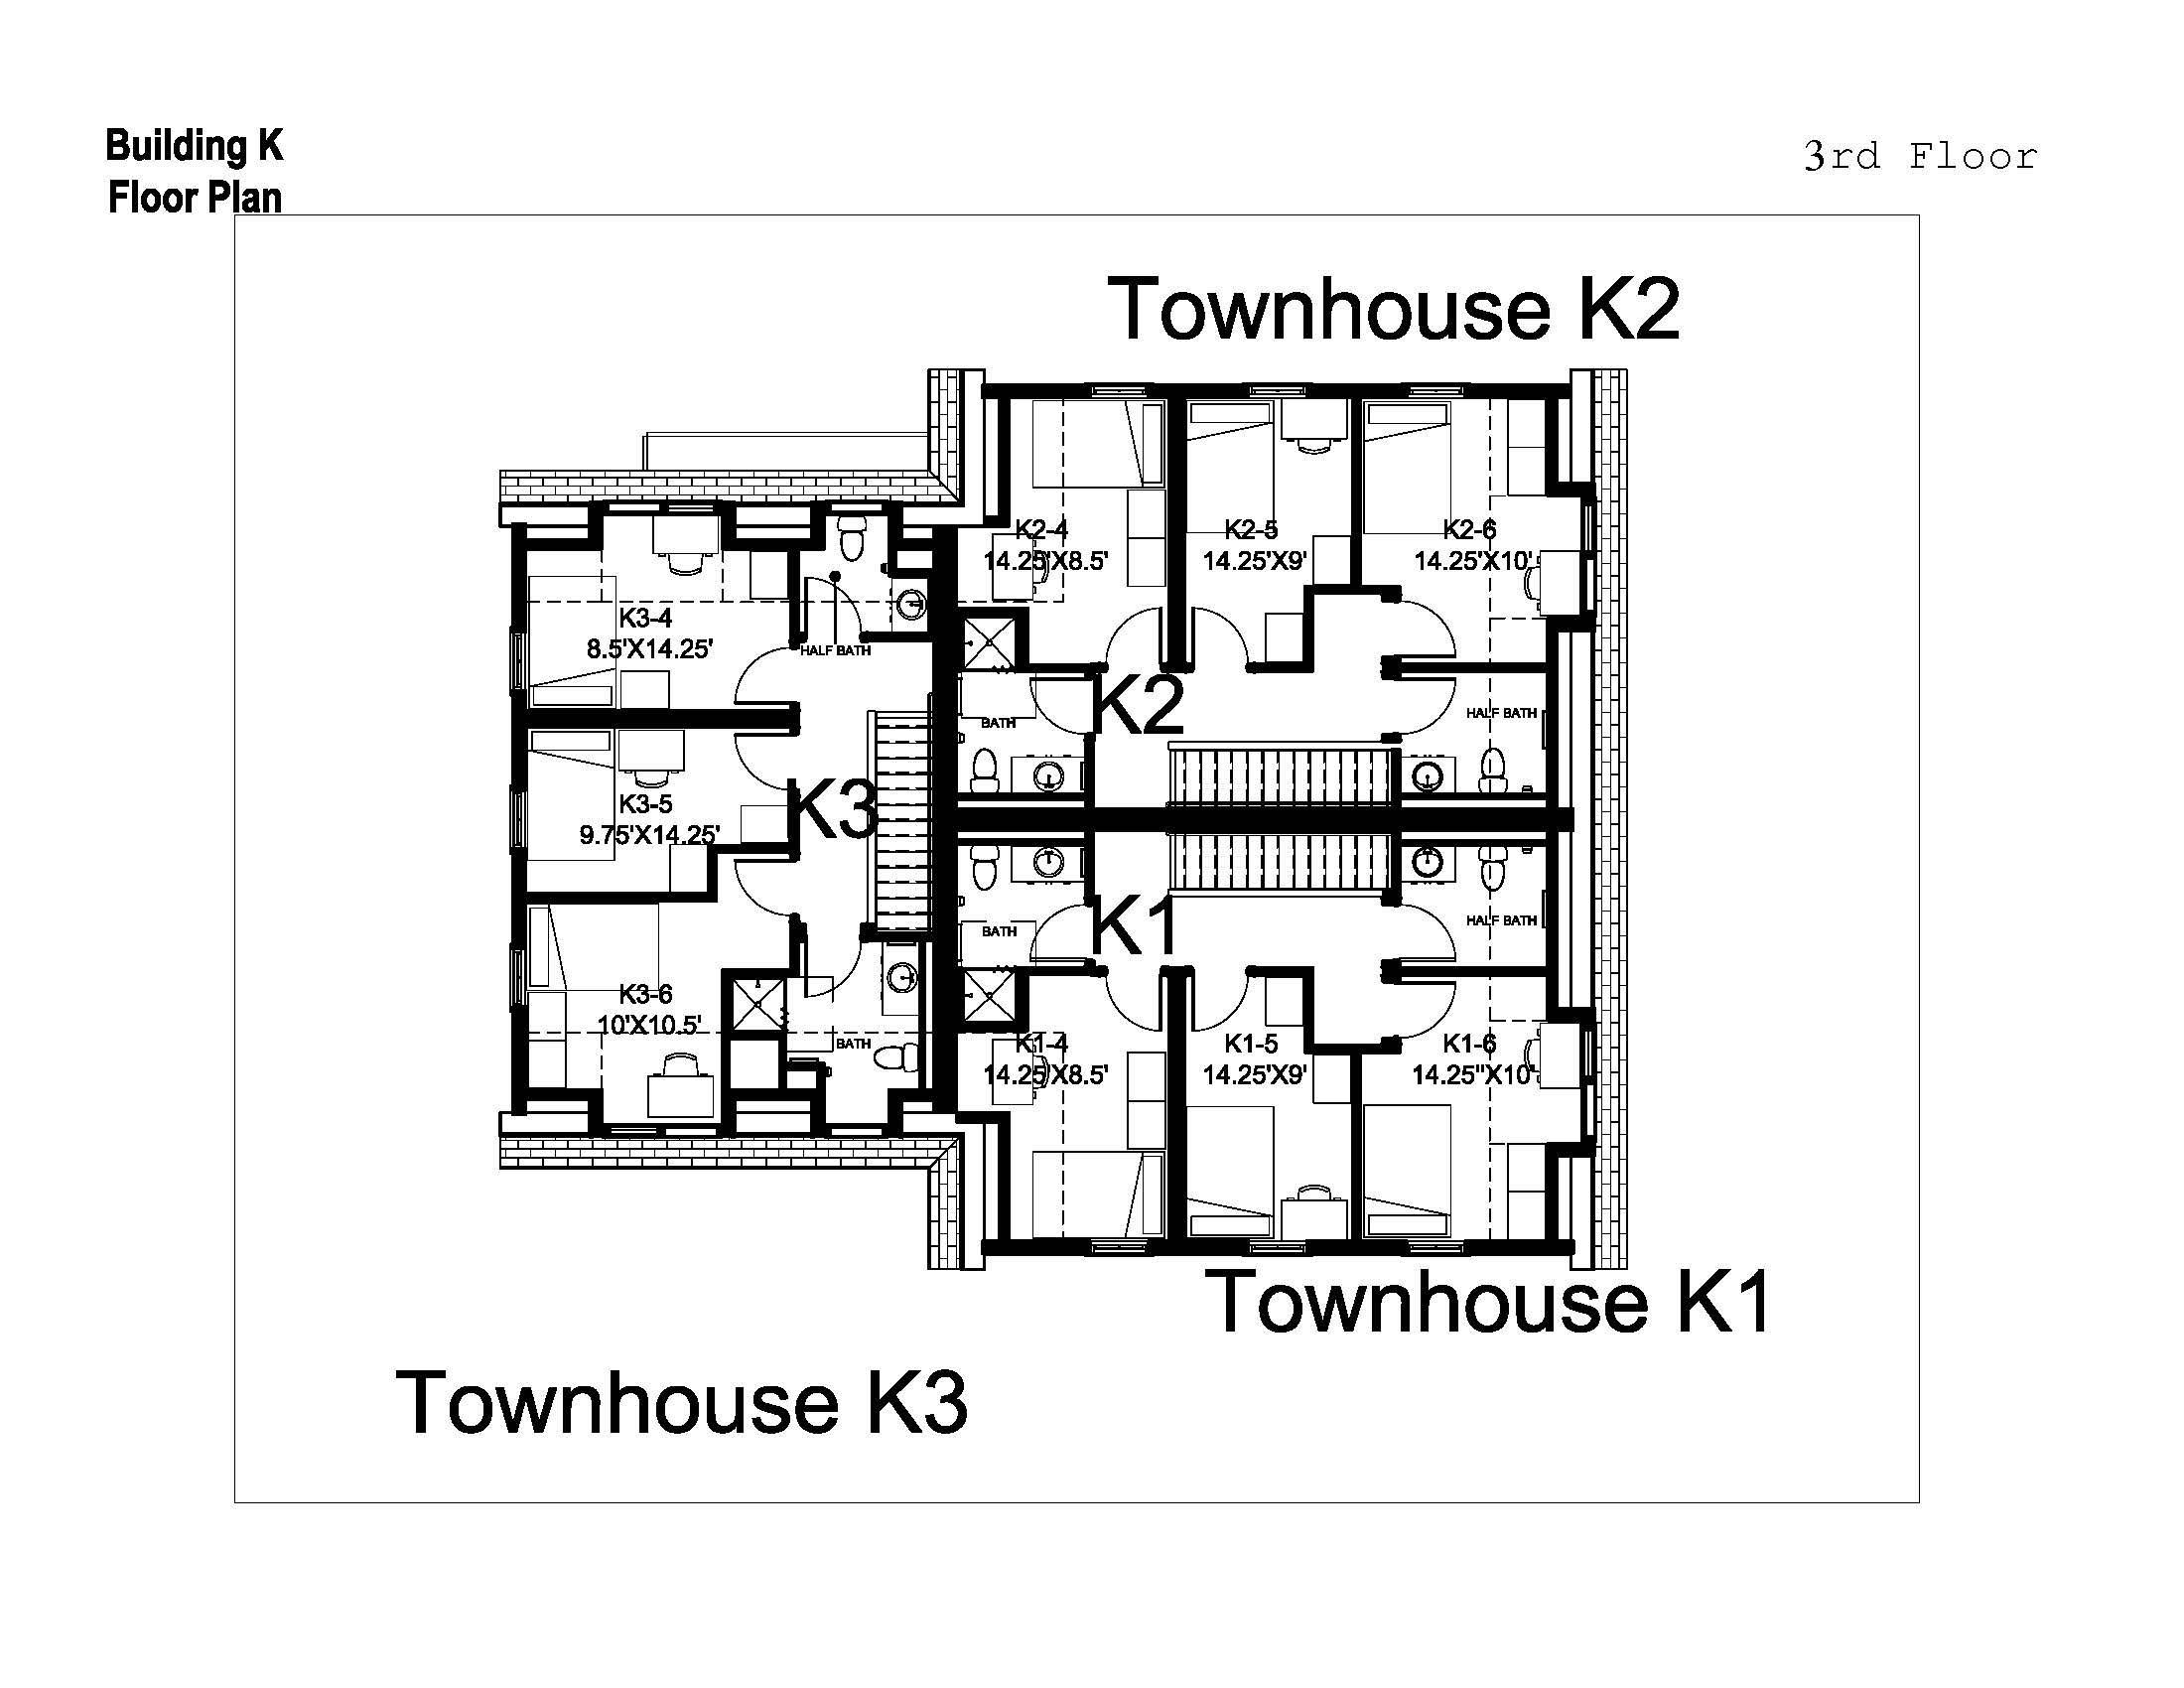 Three Bedroom Floor Plan In Nigeria Two Bedroom Floor Plan Floor Plans Bedroom Floor Plans